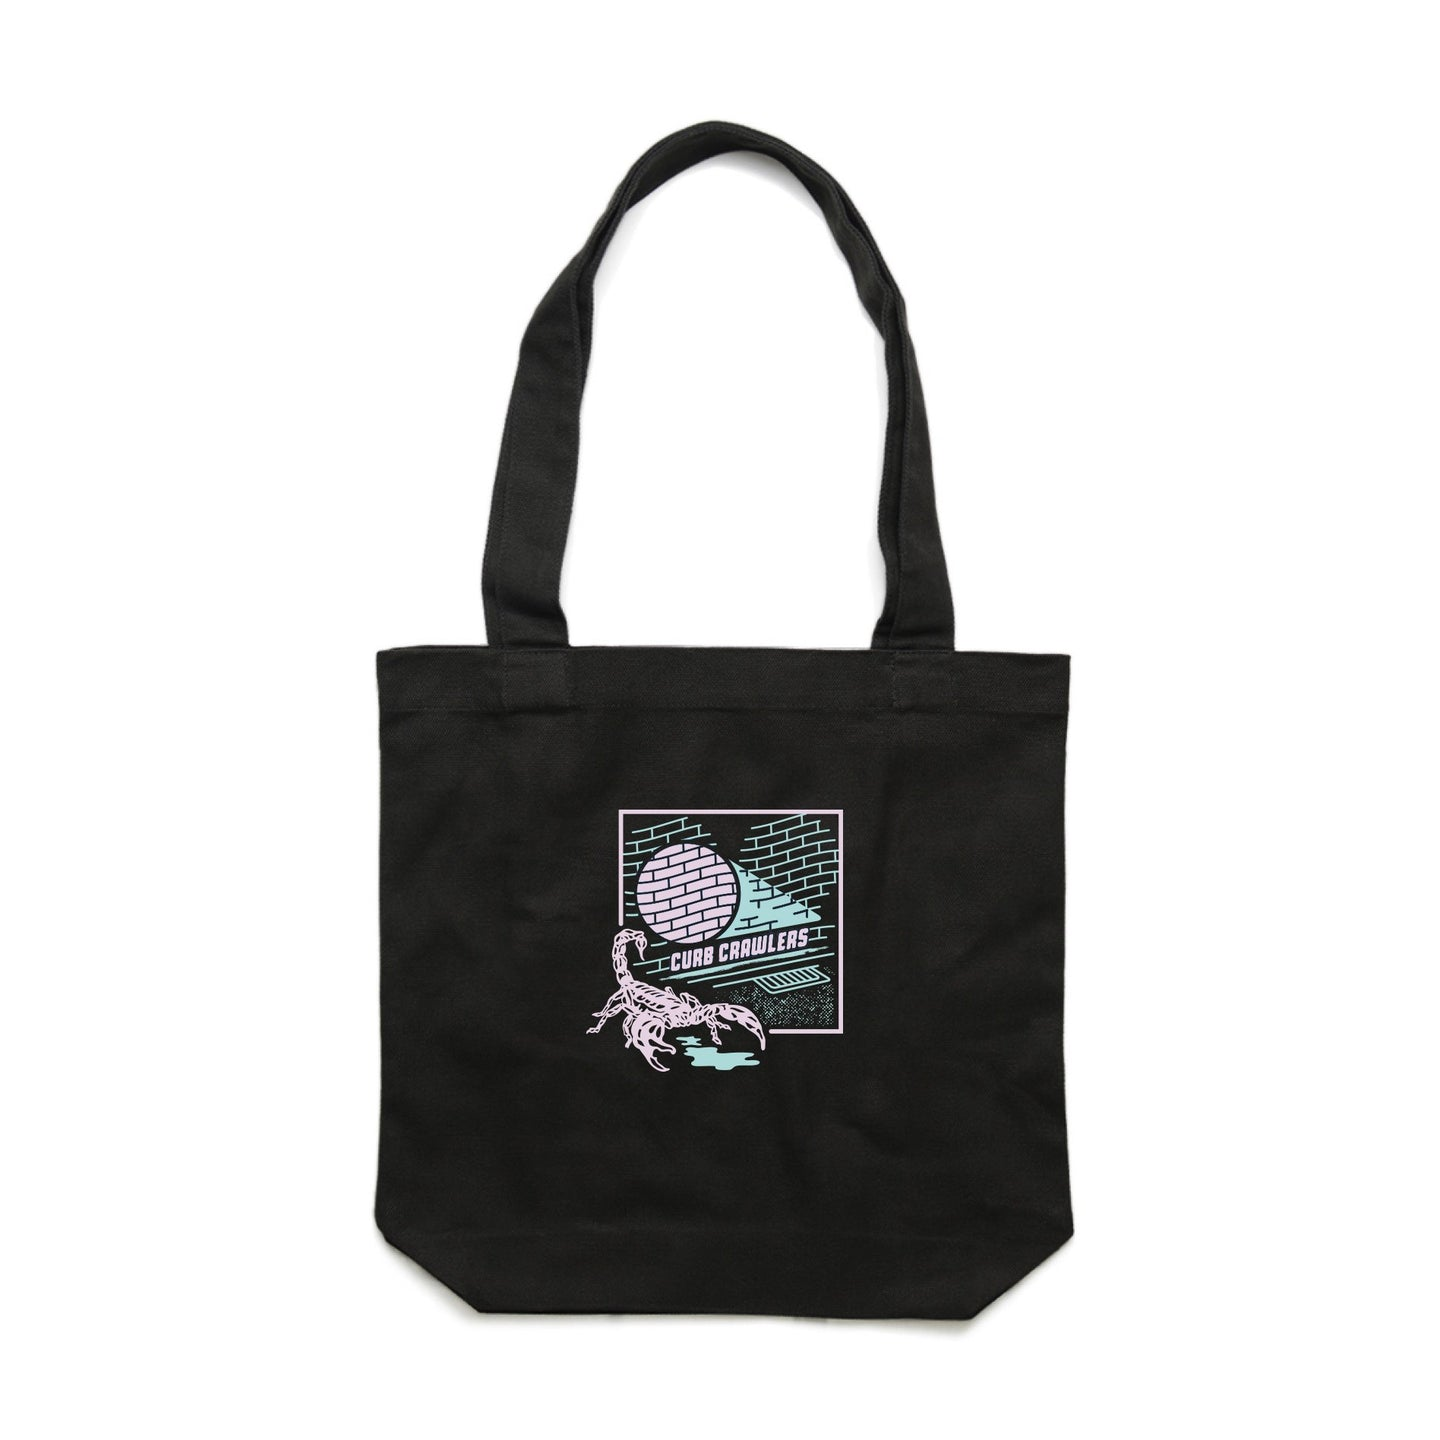 Stale Brand 'Curb Crawlers - Black' Tote